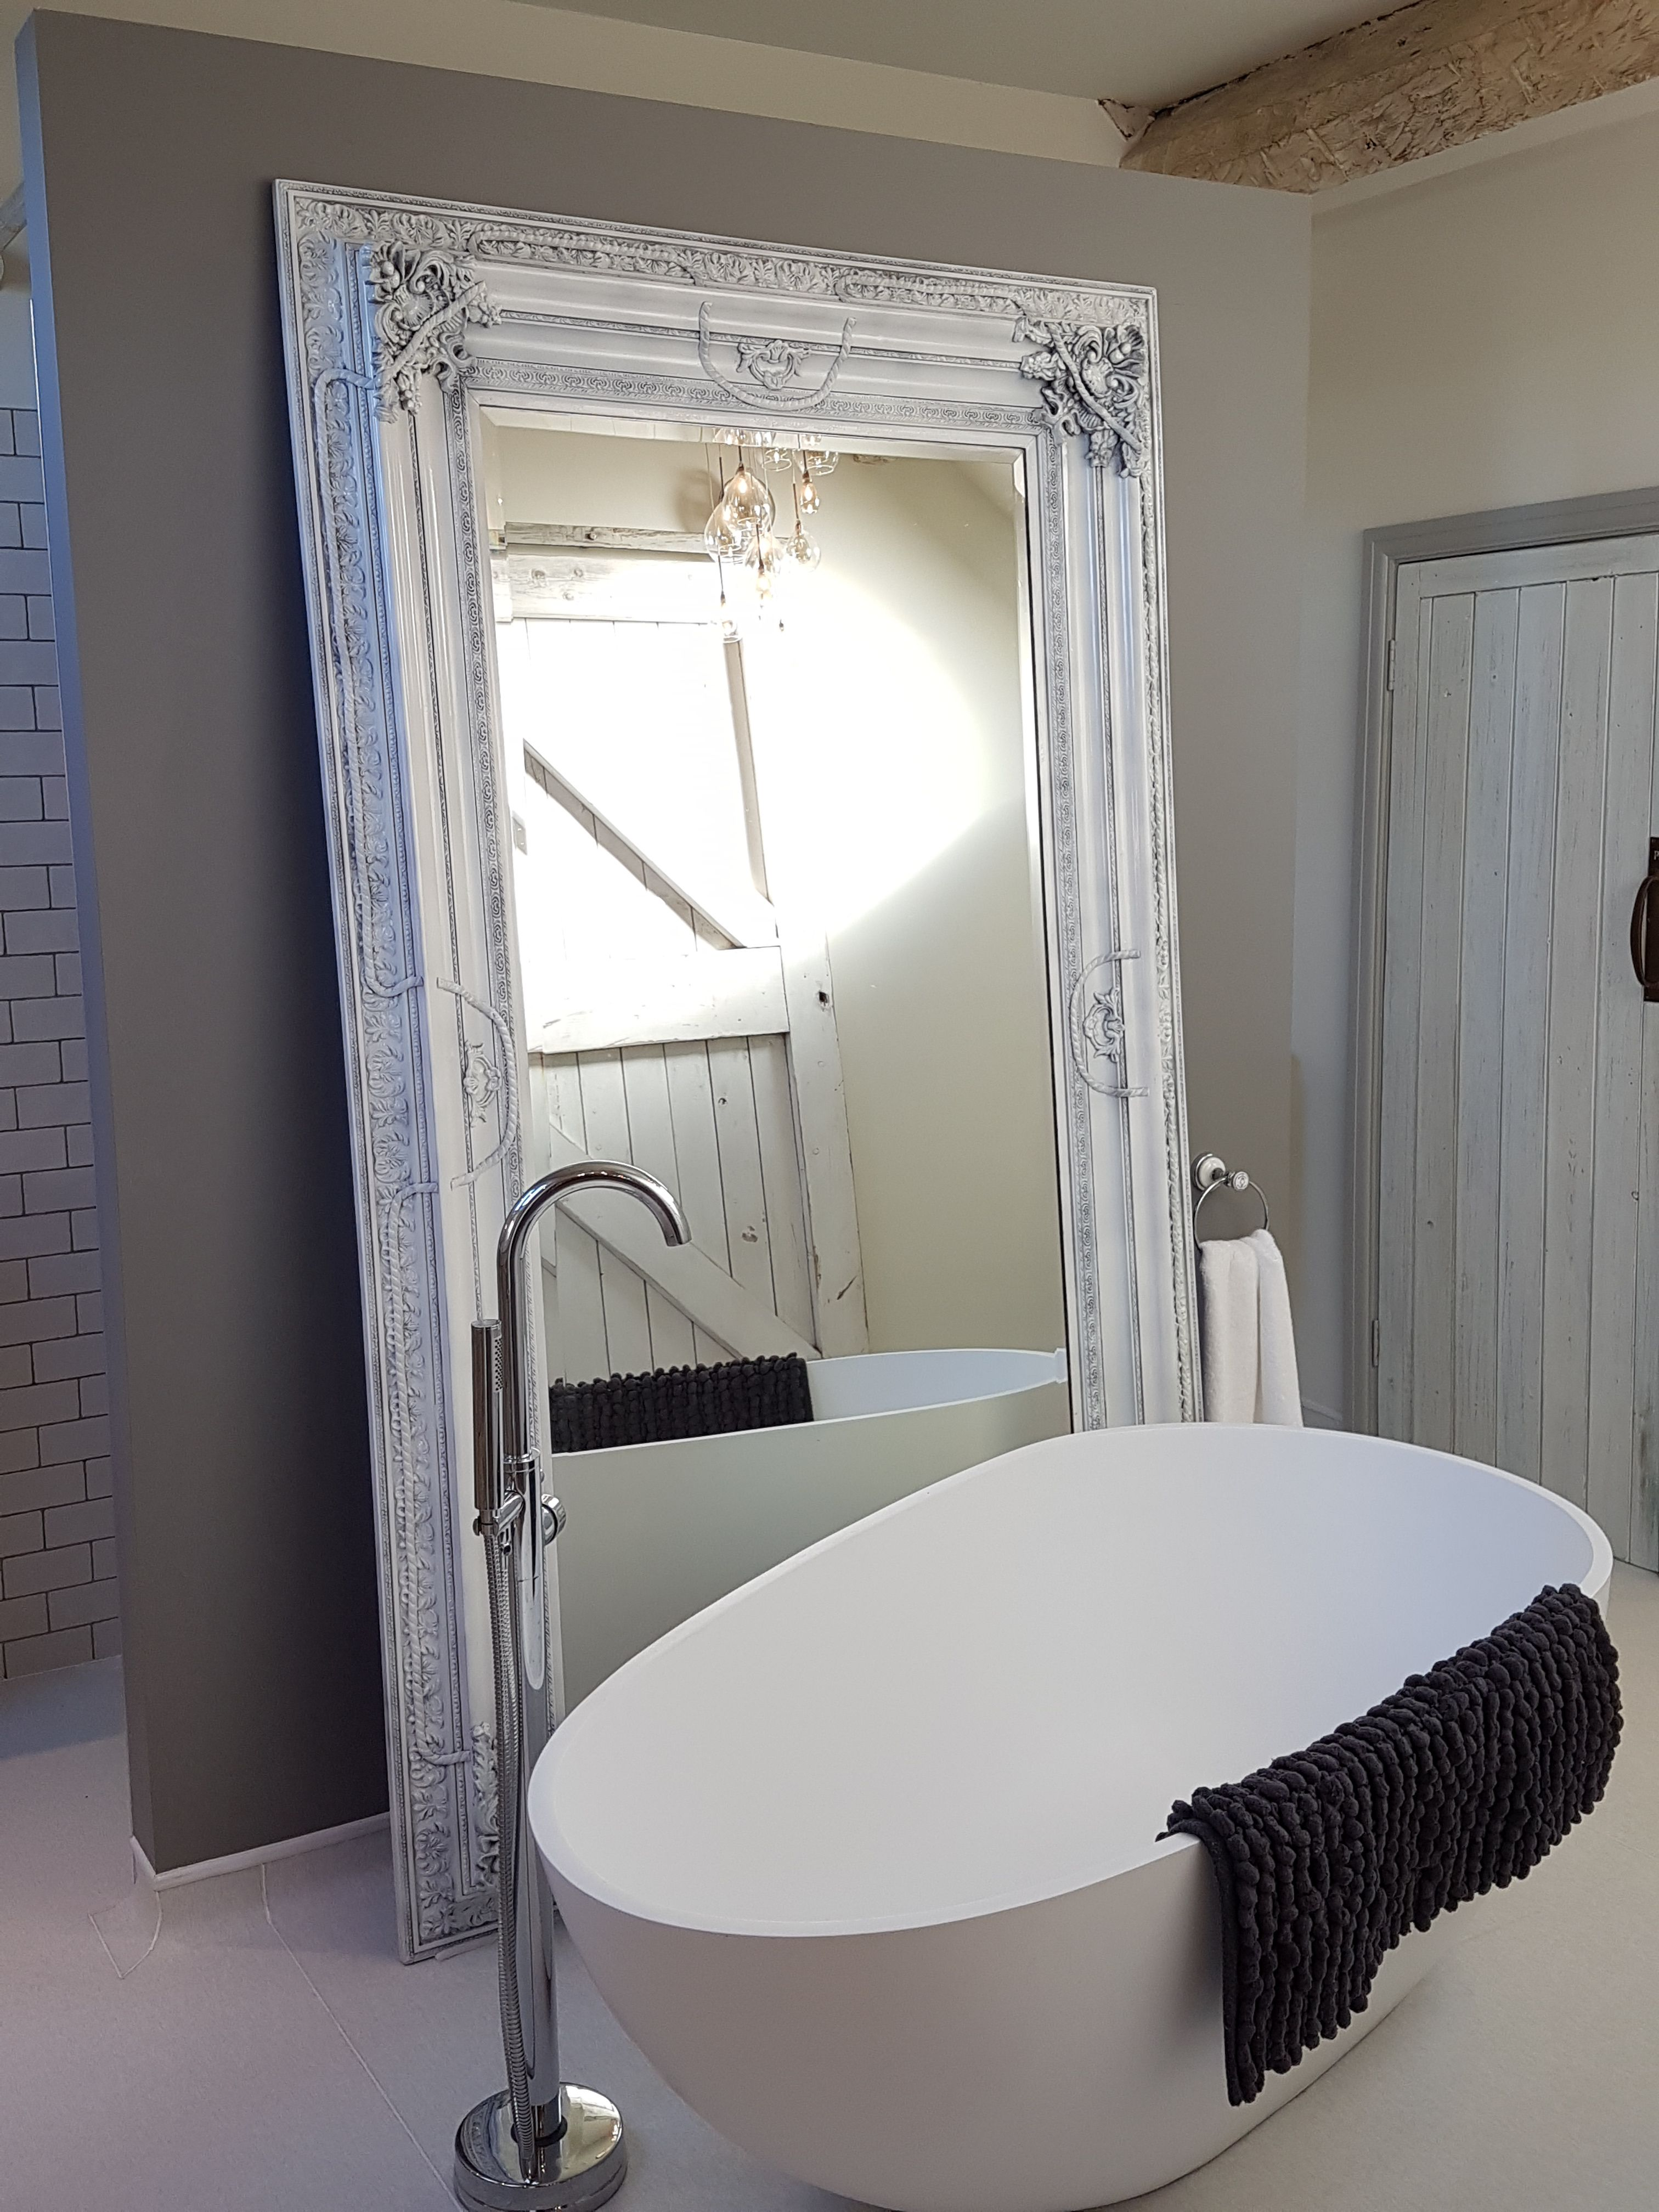 Large Wall Standing Mirror 800 This Free Standing Wall Mirror Is Finished With A White Gloss Paint Standin Mirror Wall Bedroom Mirror Wall Mirror Design Wall 8 foot mirror for wall